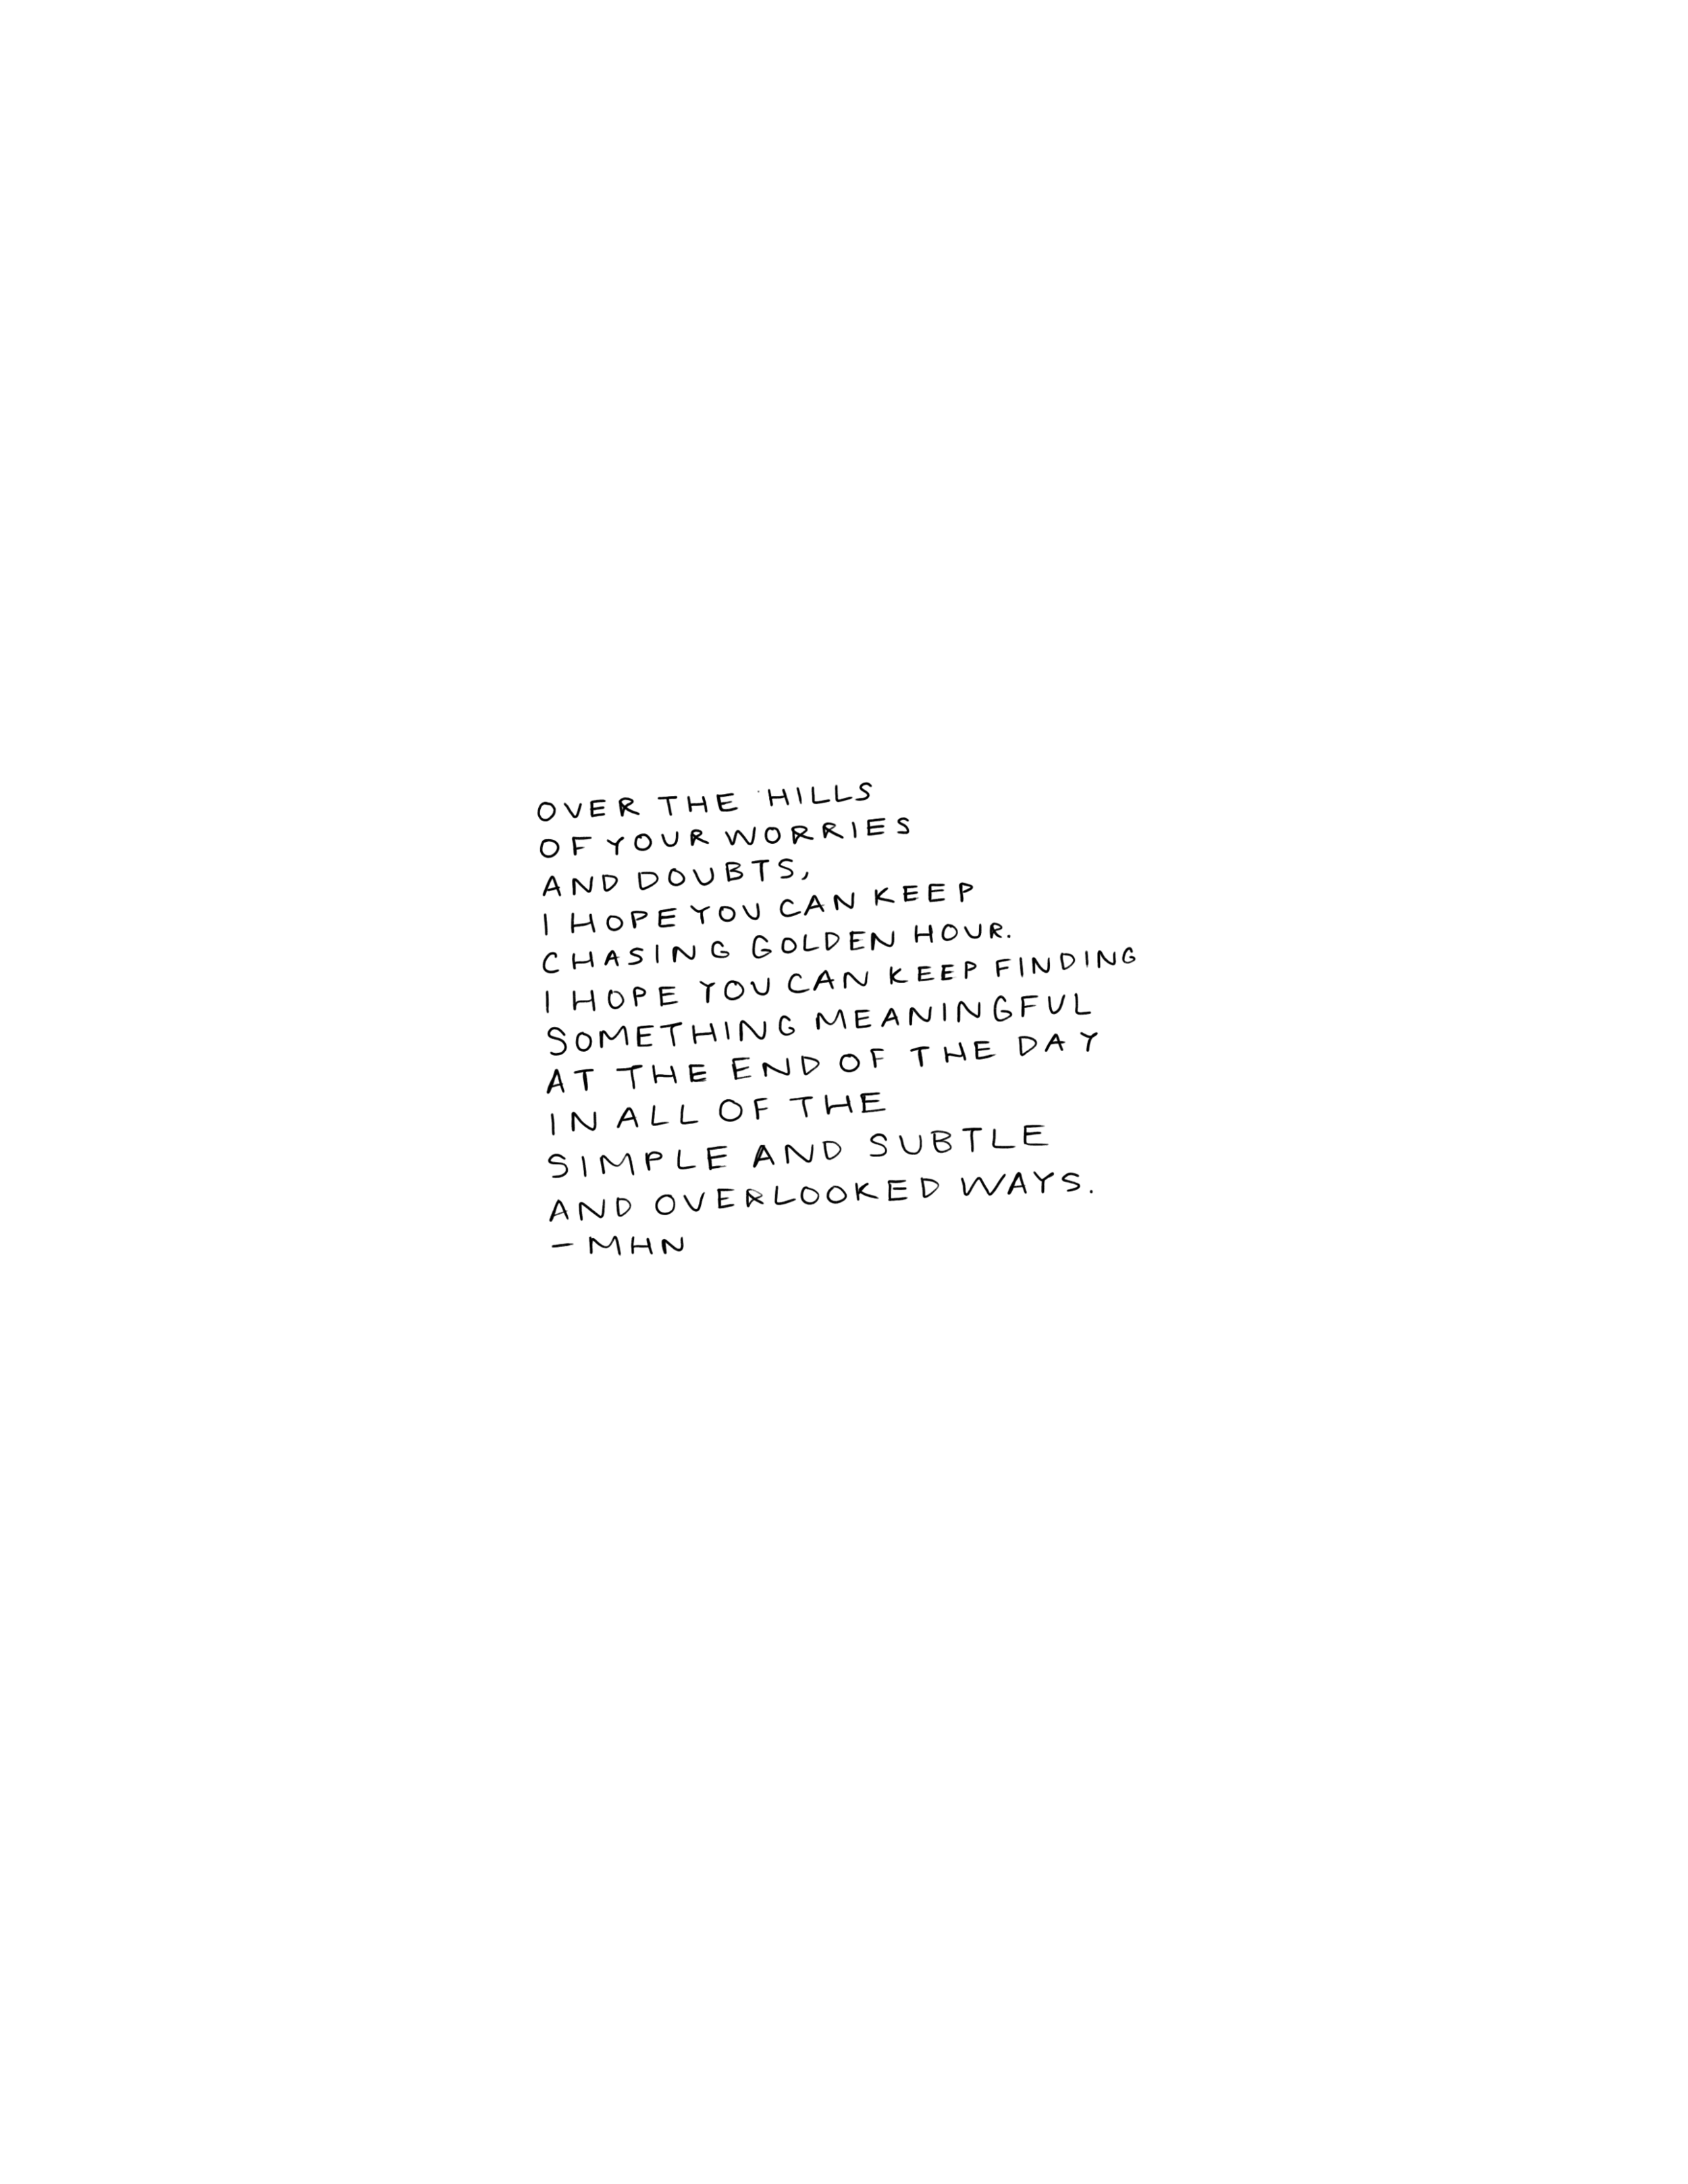 20190310 (1).png